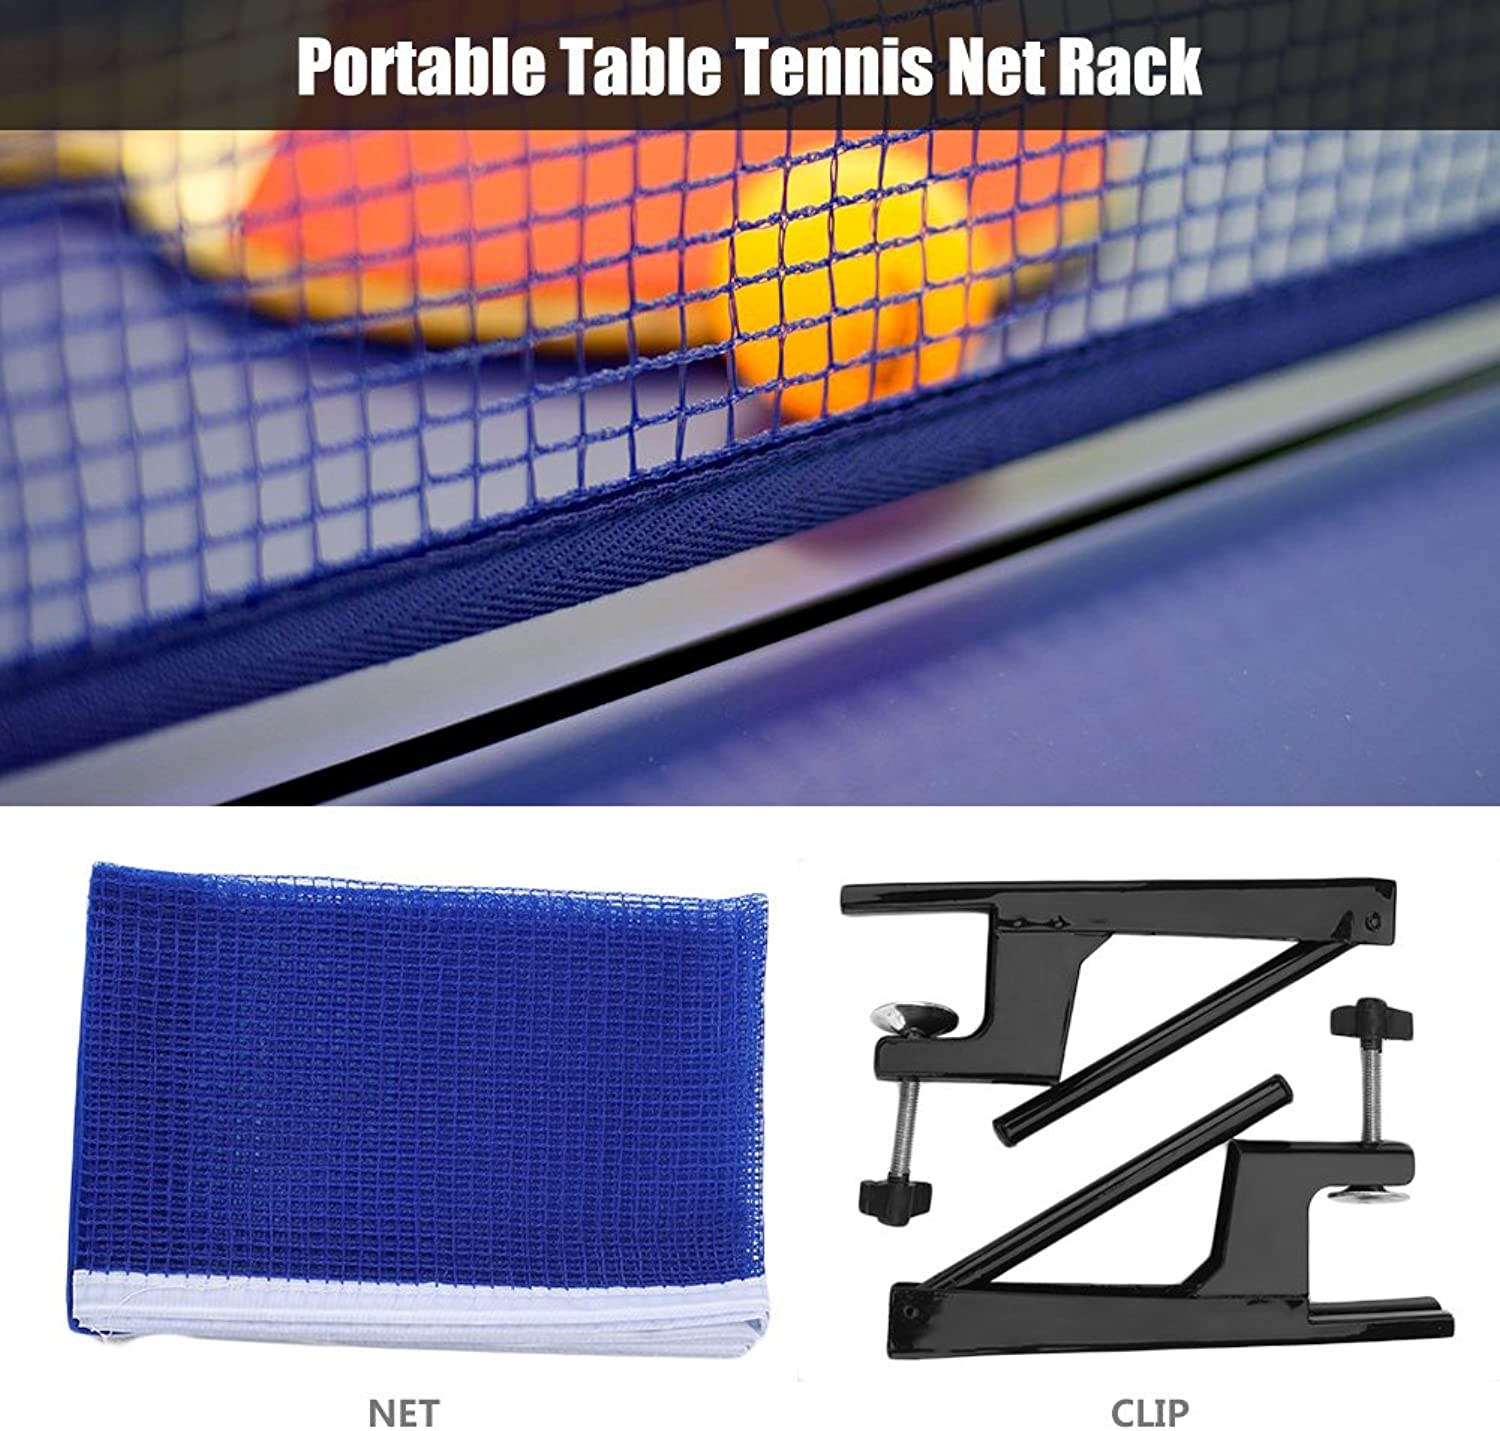 VBestelife Premium Ping Pong Table Tennis Catcher Net  Portable Ball Catch Netting with Metal Clamp Posts Ping Pong Net Set Accessory for Indoor Outdoor